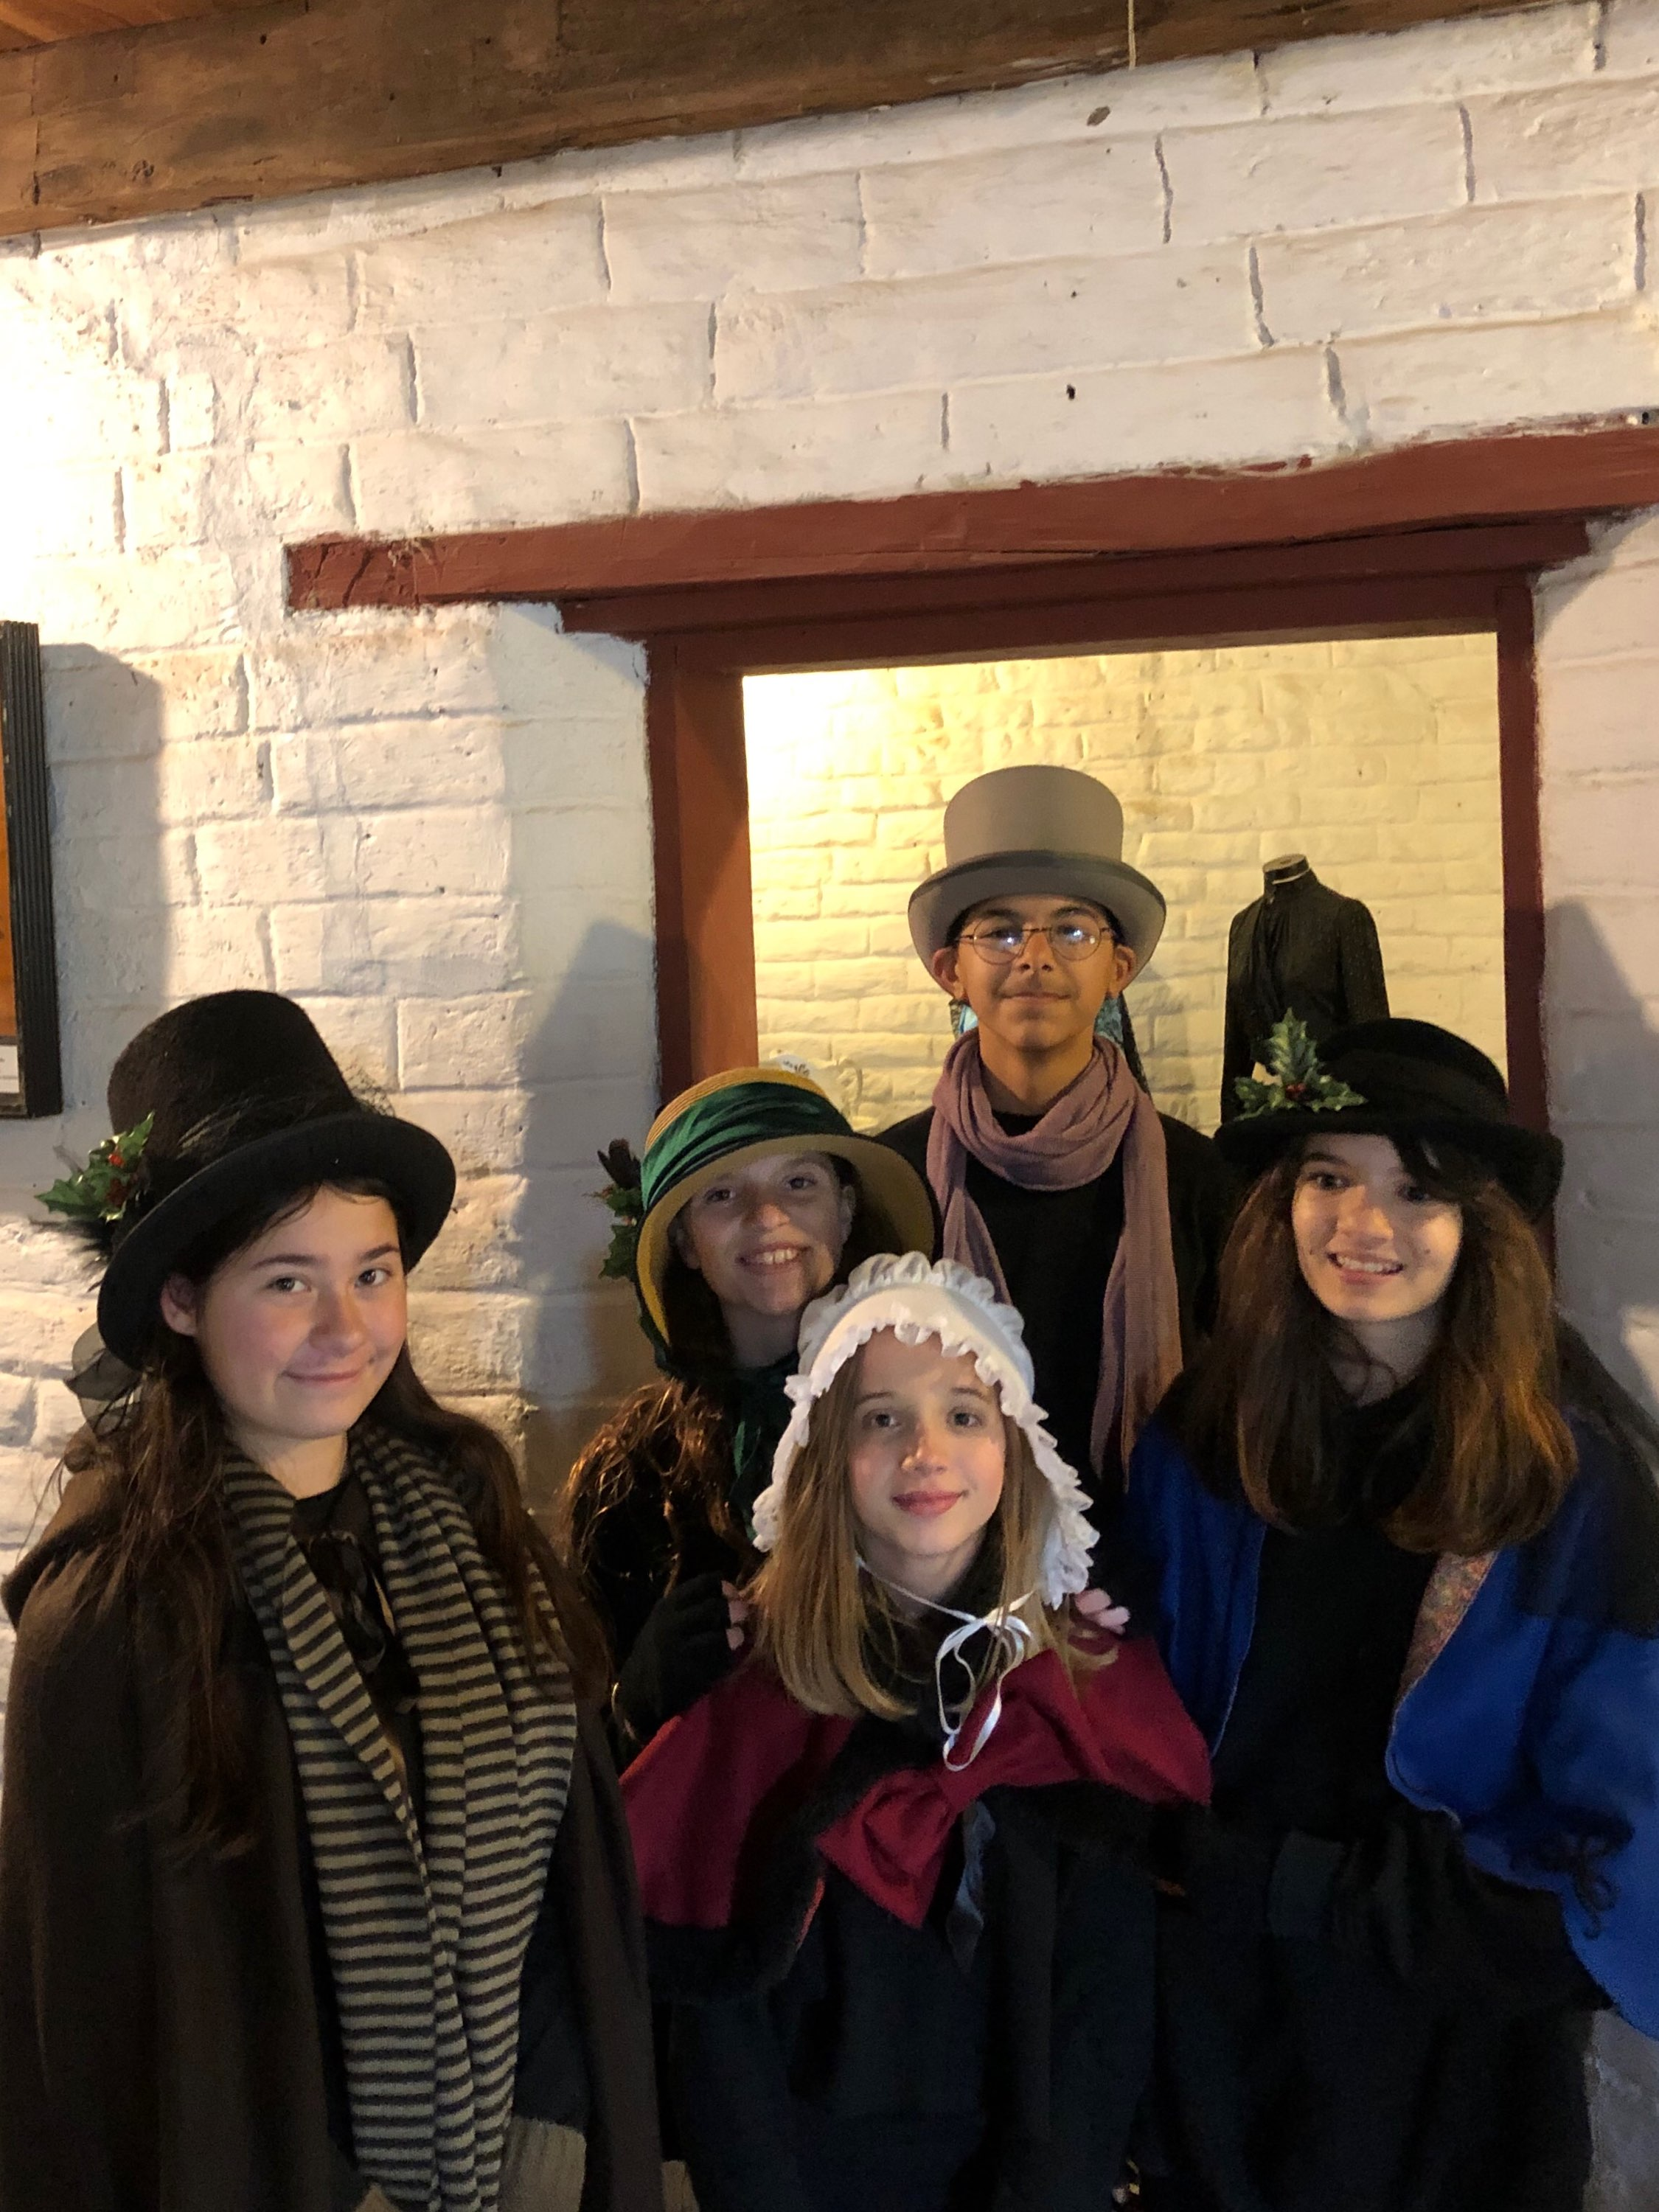 Starbound Theater Christmas Carolers at the Peña Adobe!